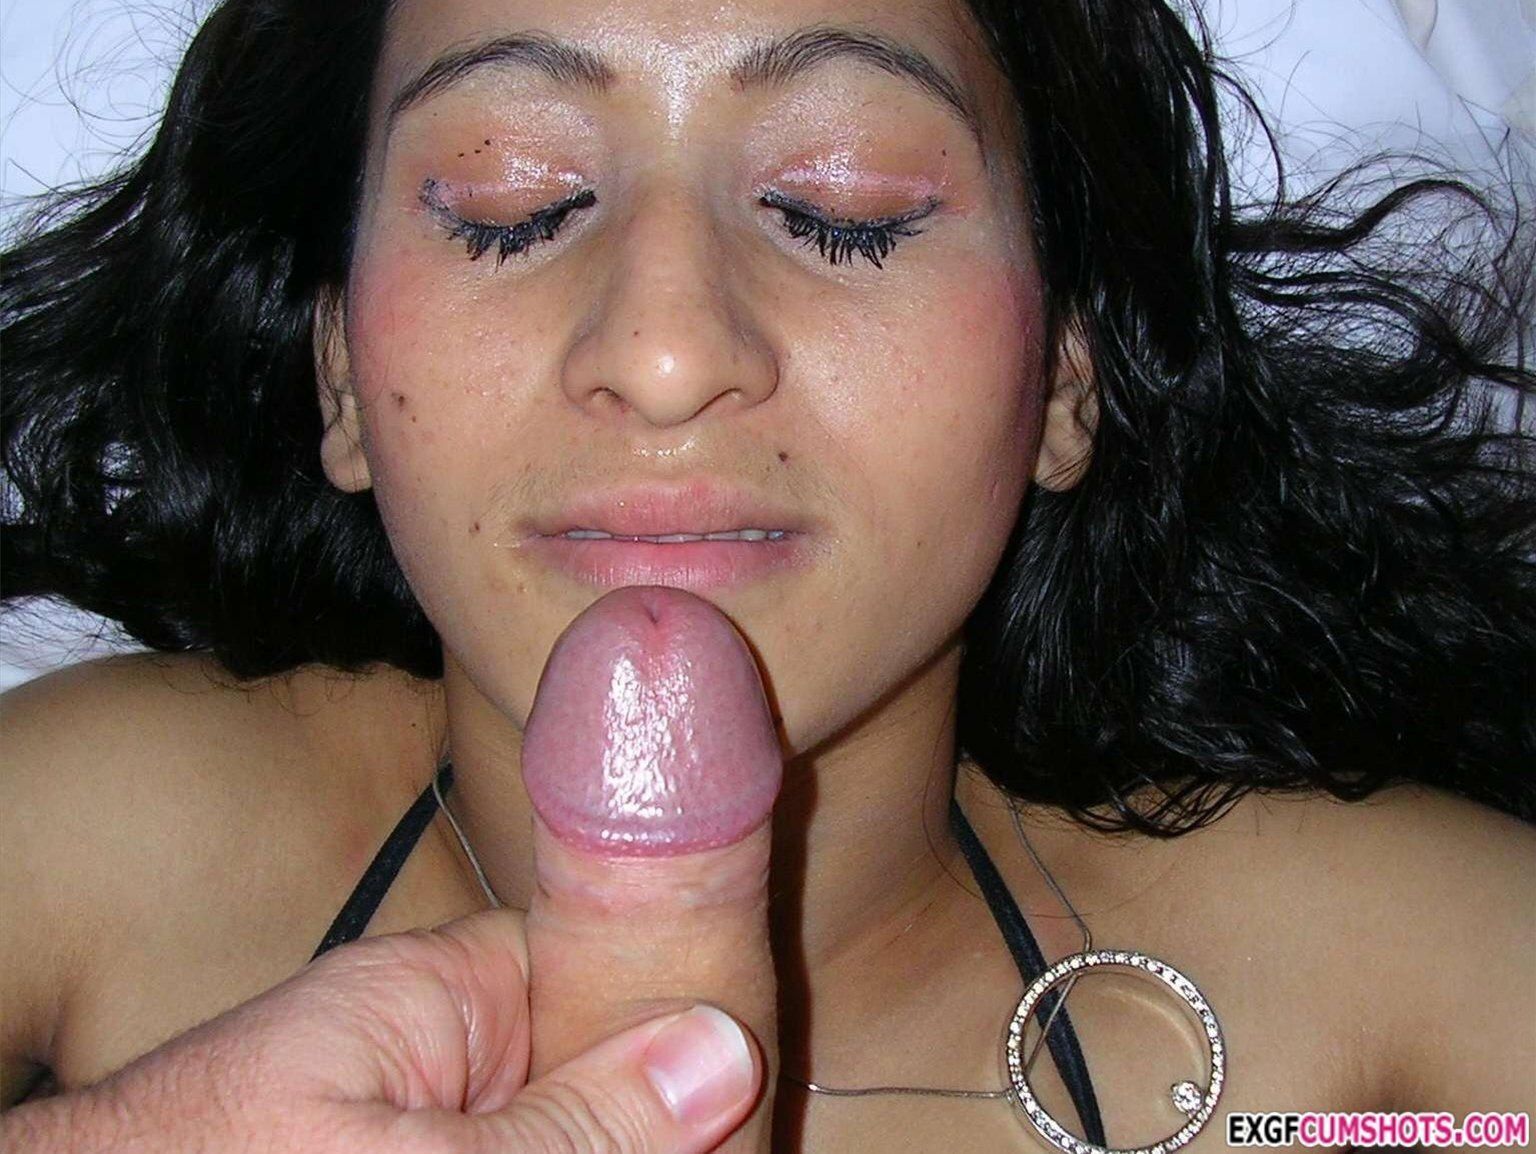 Real Cum Shot In Movie - Cumshot porn facial movie - HD porn website pic. Comments: 1